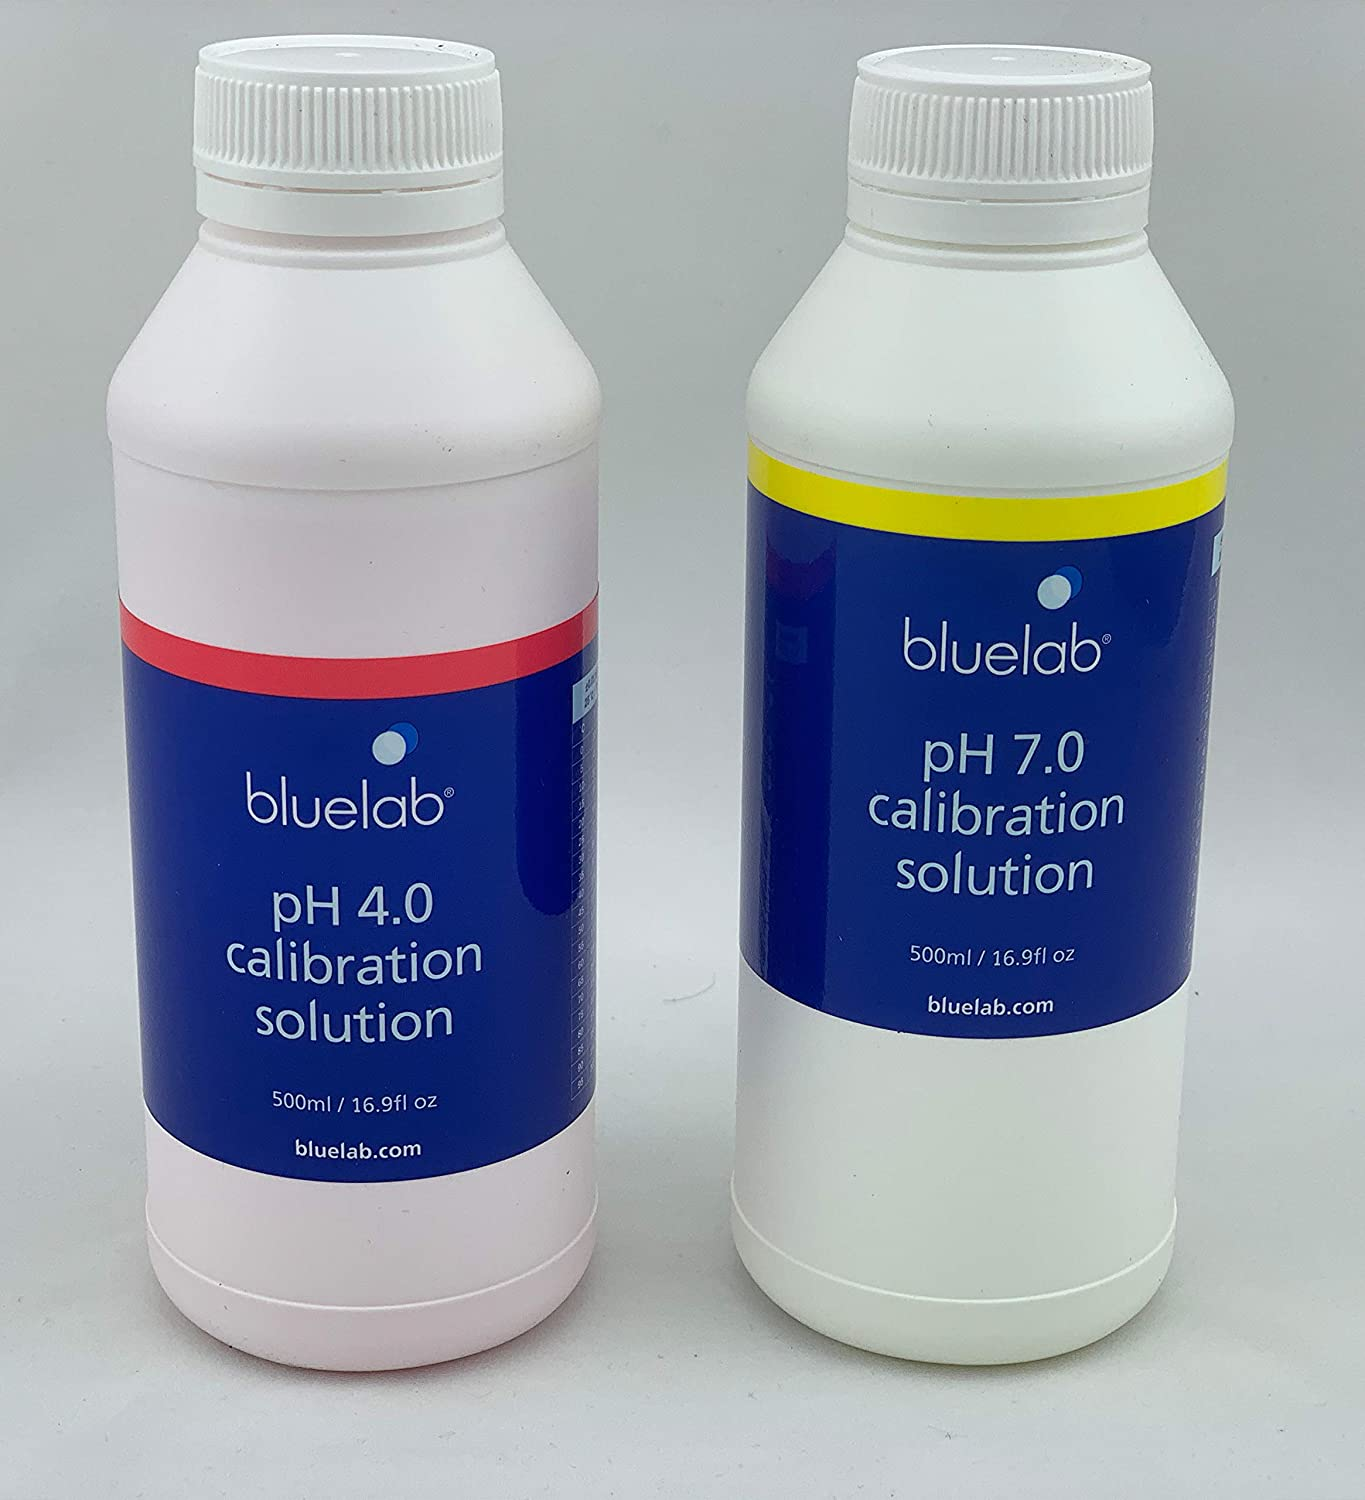 Blue-Lab 250 ml PH-4.0 + pH 7.0 - Solución de calibración para dispositivos de medición de electrodos de pH (250 ml, PH 4.0 + 7.0)